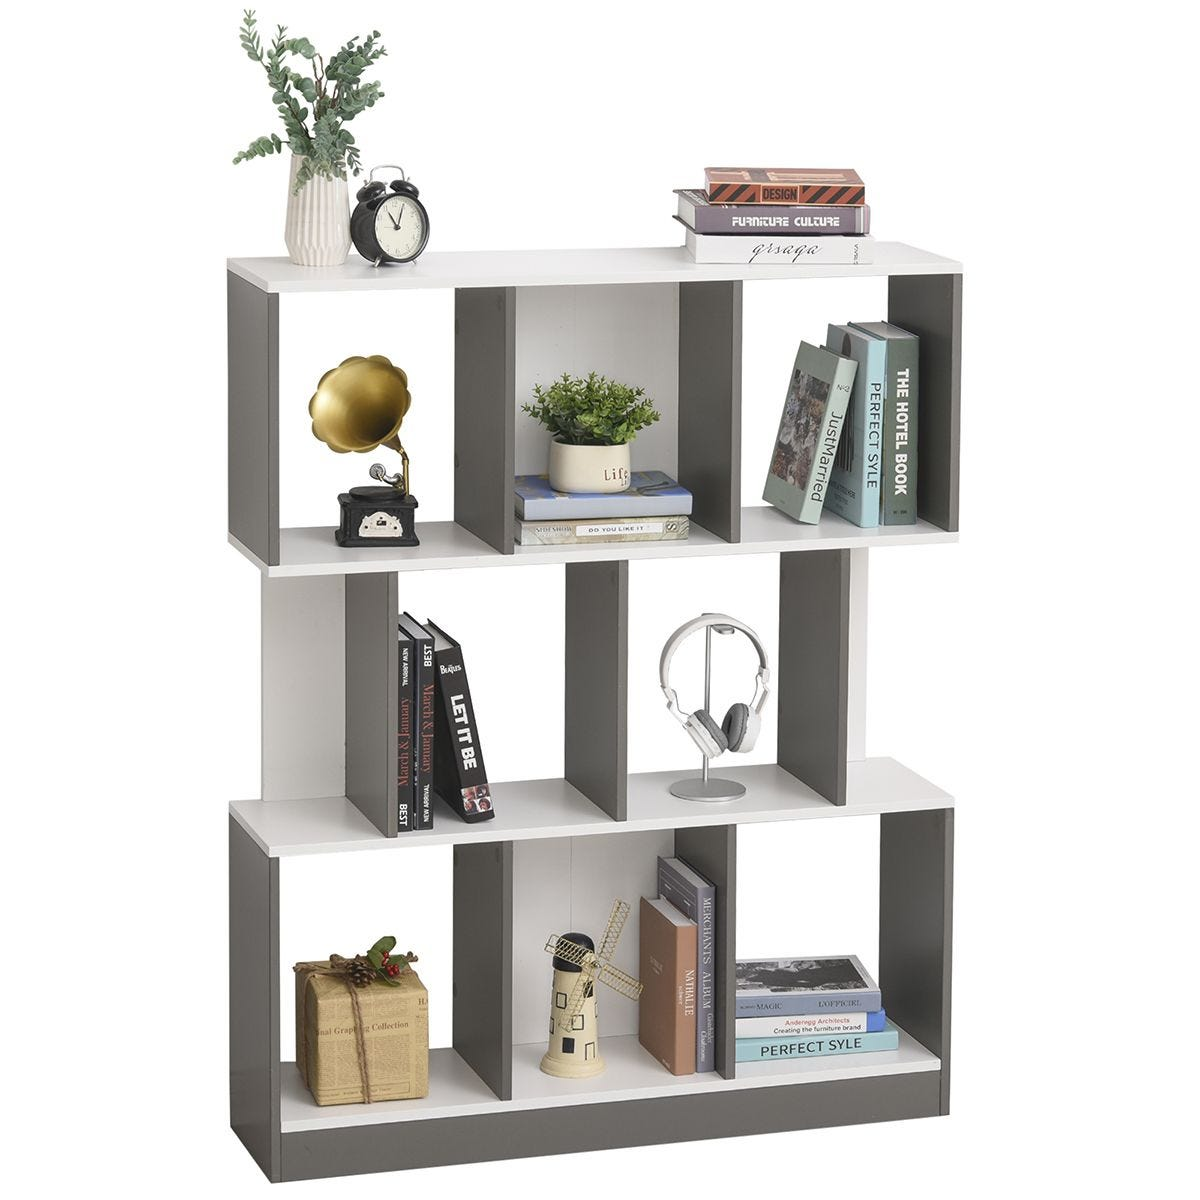 3 Tier 8 Cube Home Office Display Unit Bookcase Shelving With Anti Tip Straps White And Grey